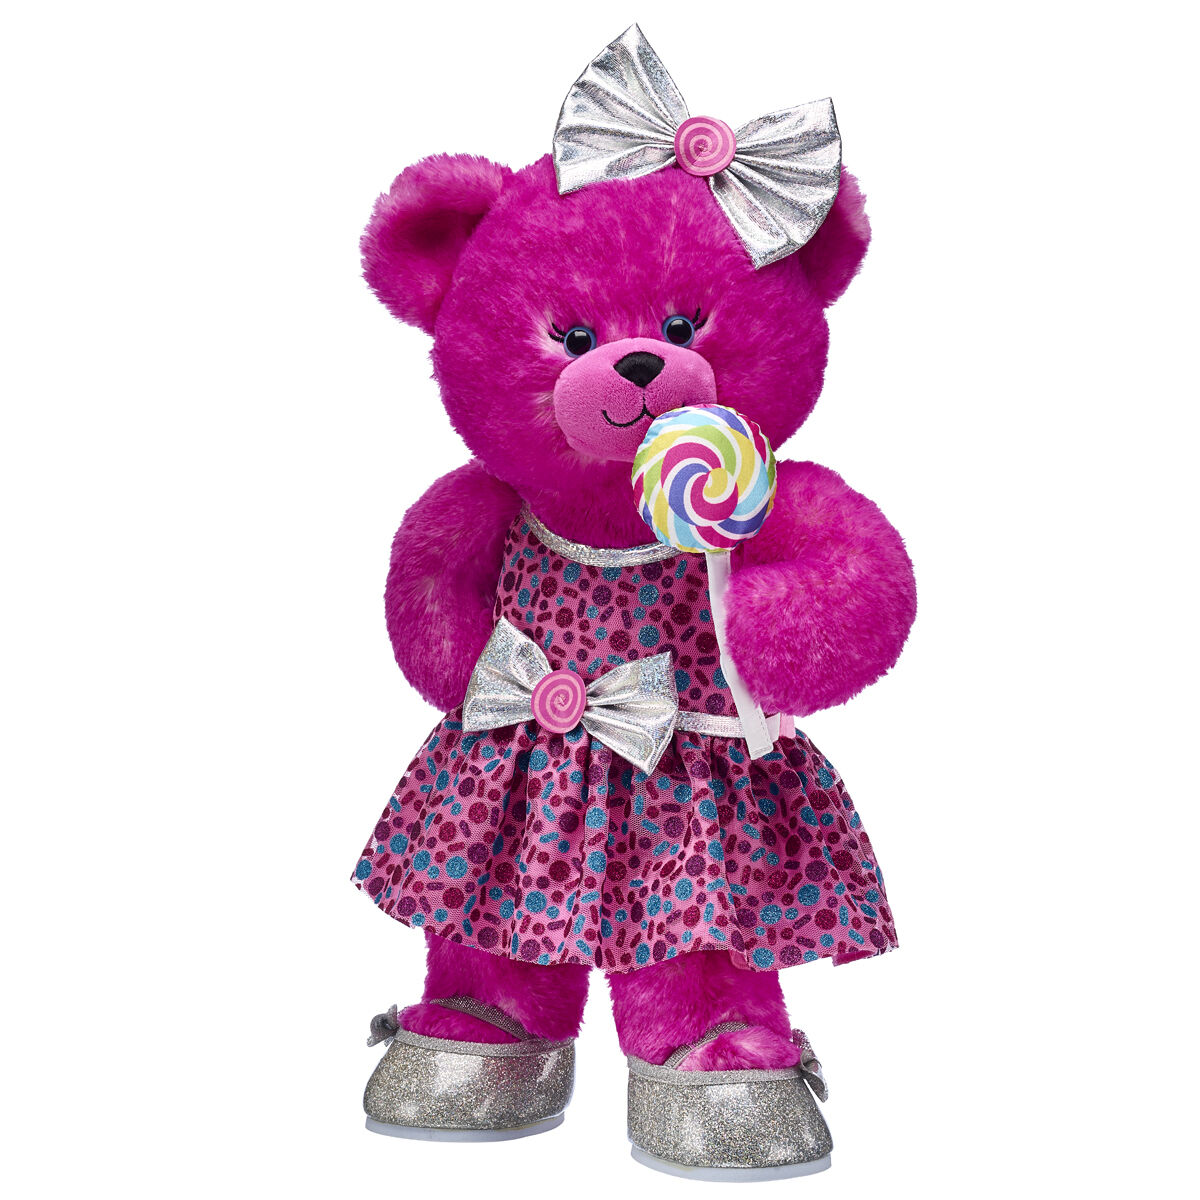 Pink Candy Pop Bear Gift Set ...  sc 1 st  Build-A-Bear & Plush Baker Gifts | Find the Best Gifts for Bakers | Build-A-Bear®